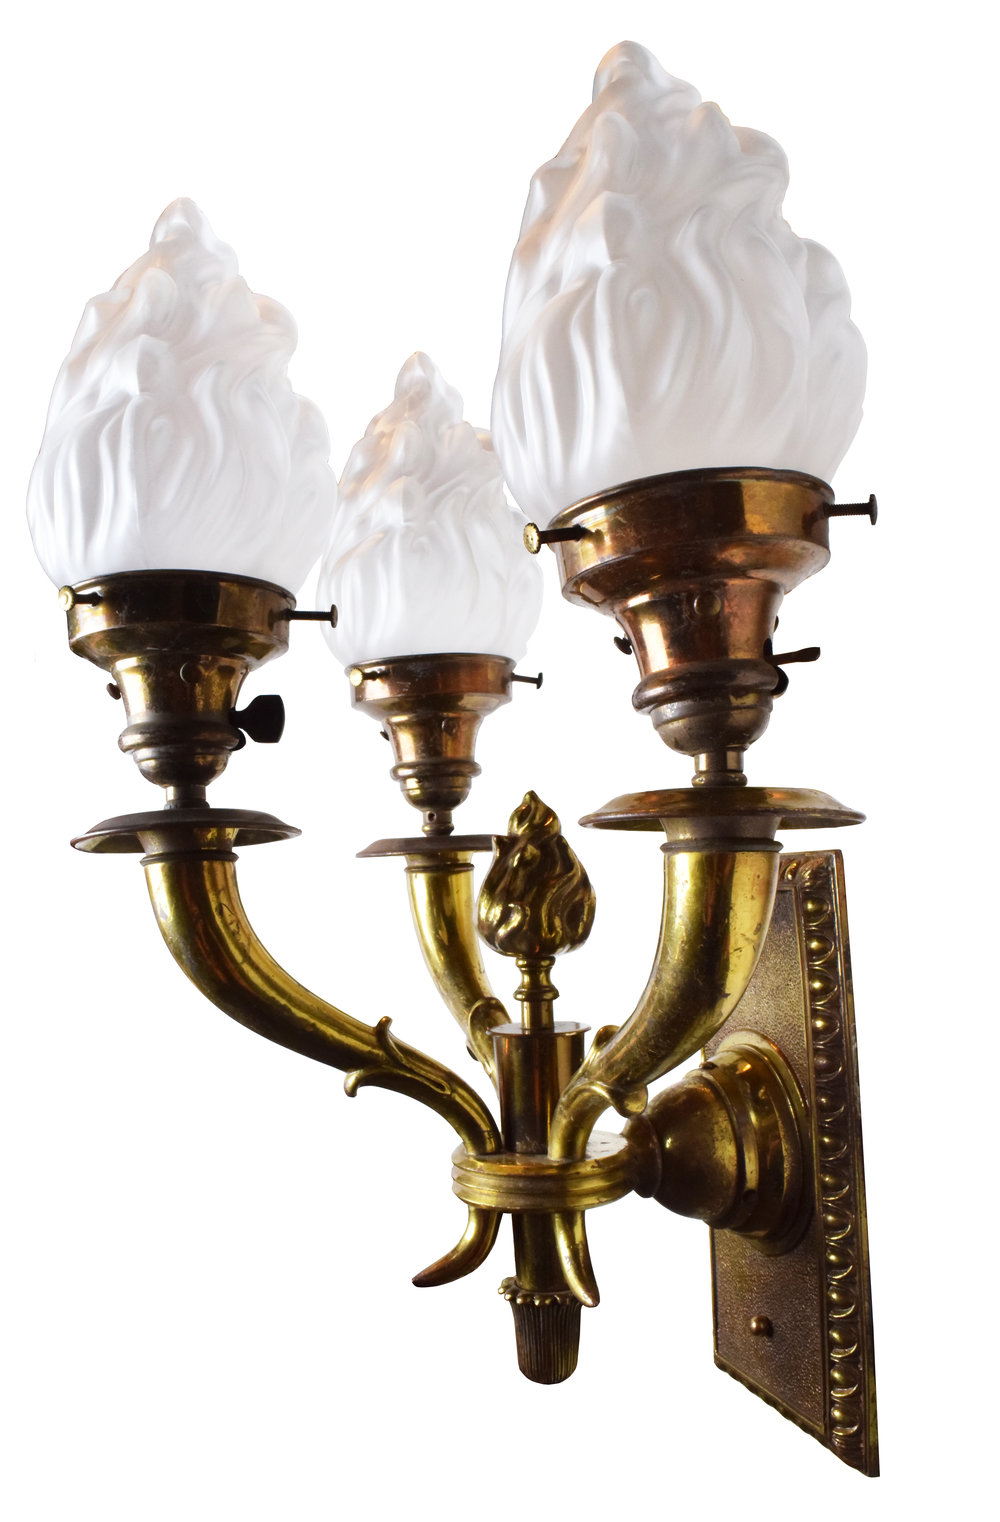 47172-brass-3-arm-ED-sconce-sideview.jpg